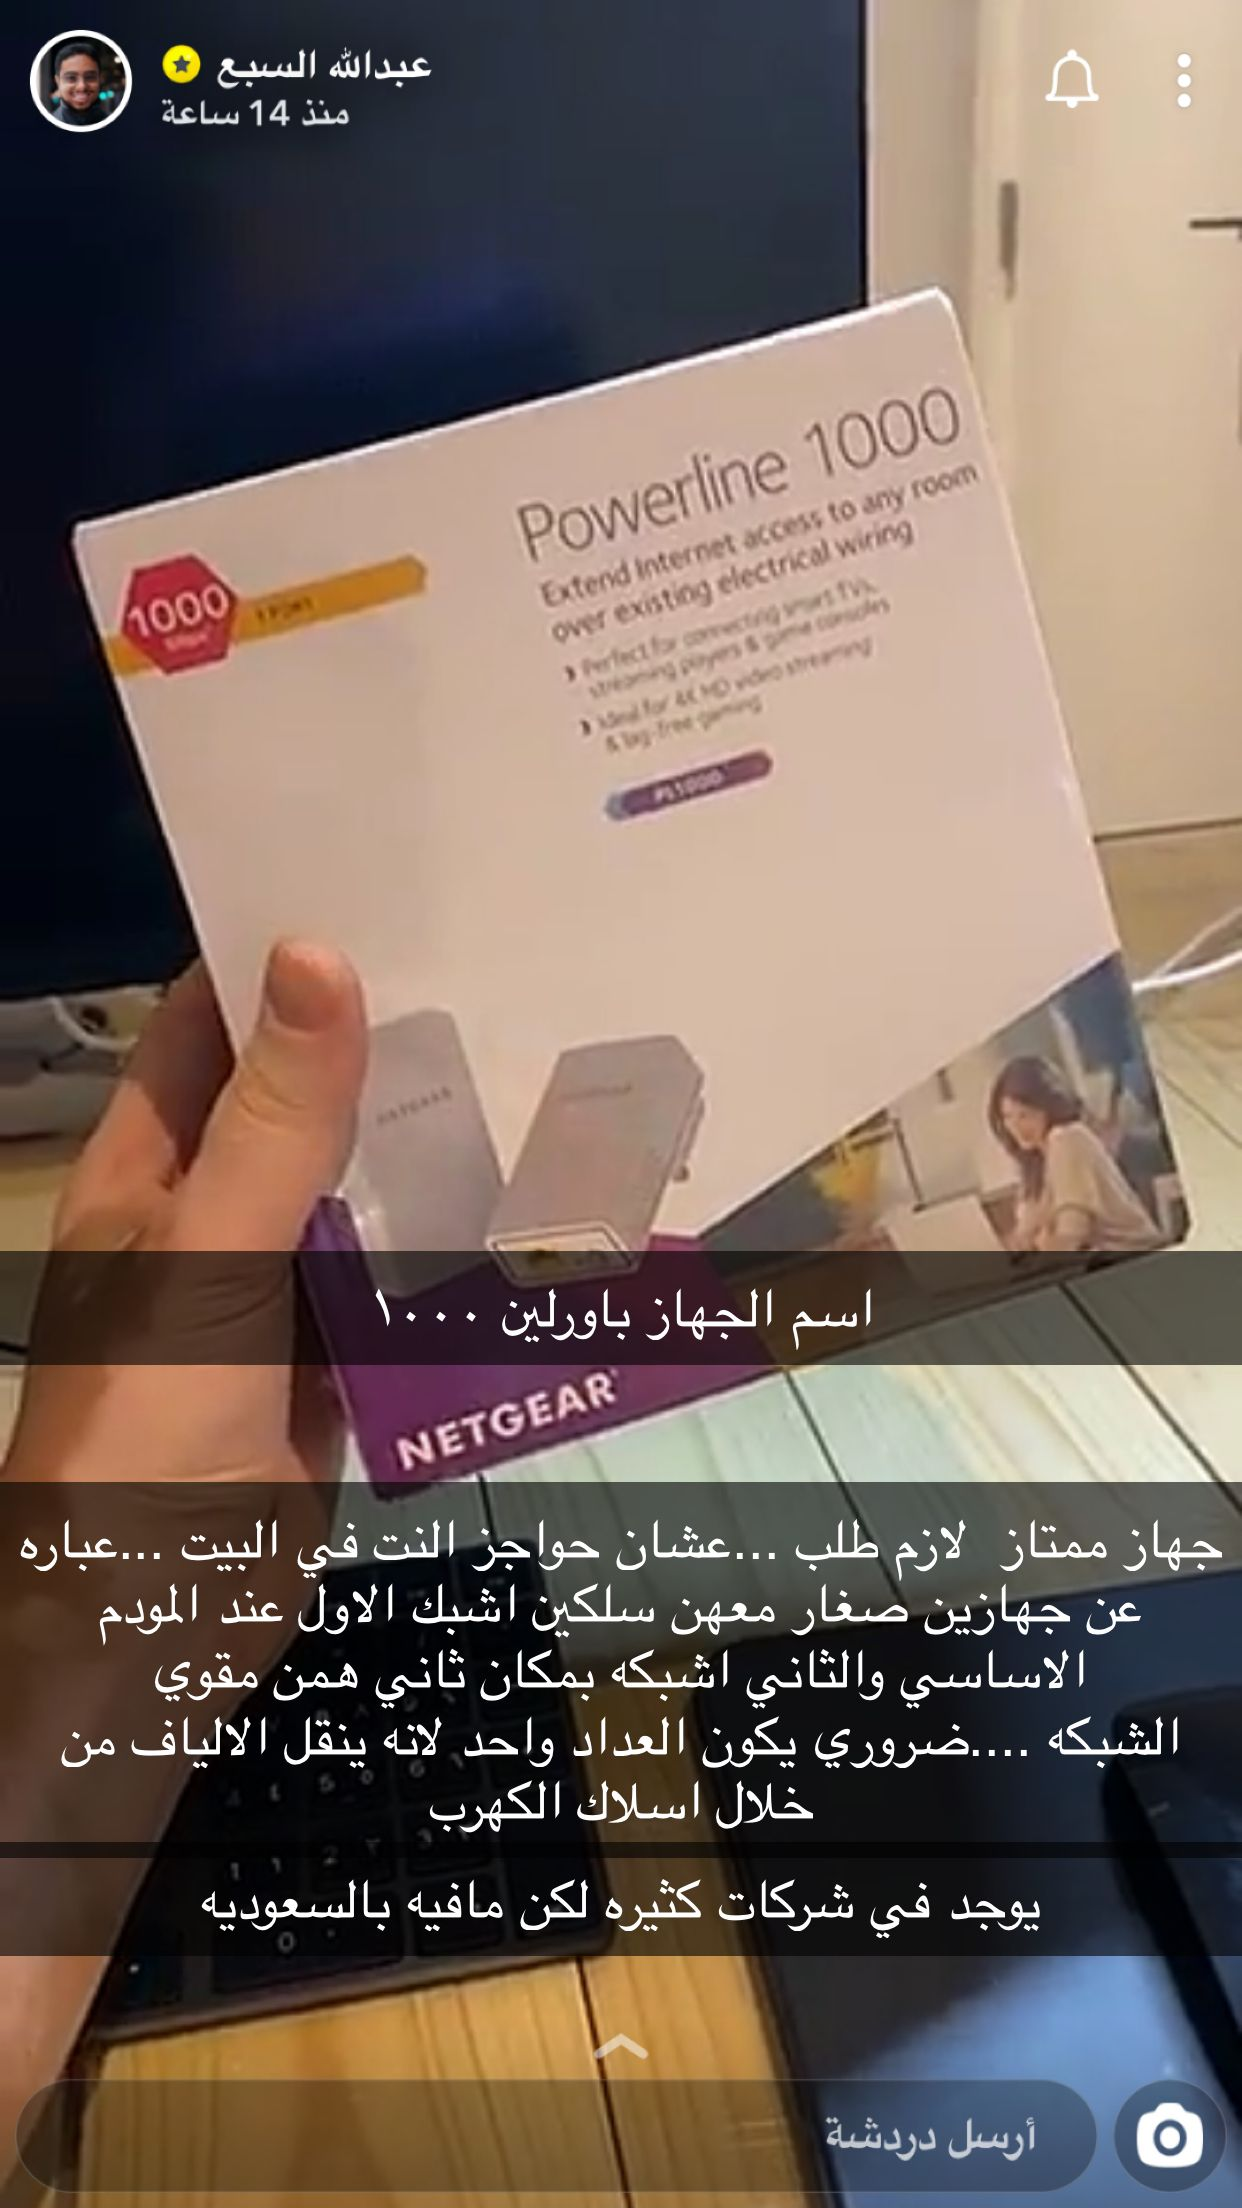 Pin By زينه On تقنيه Powerline Netgear Cards Against Humanity